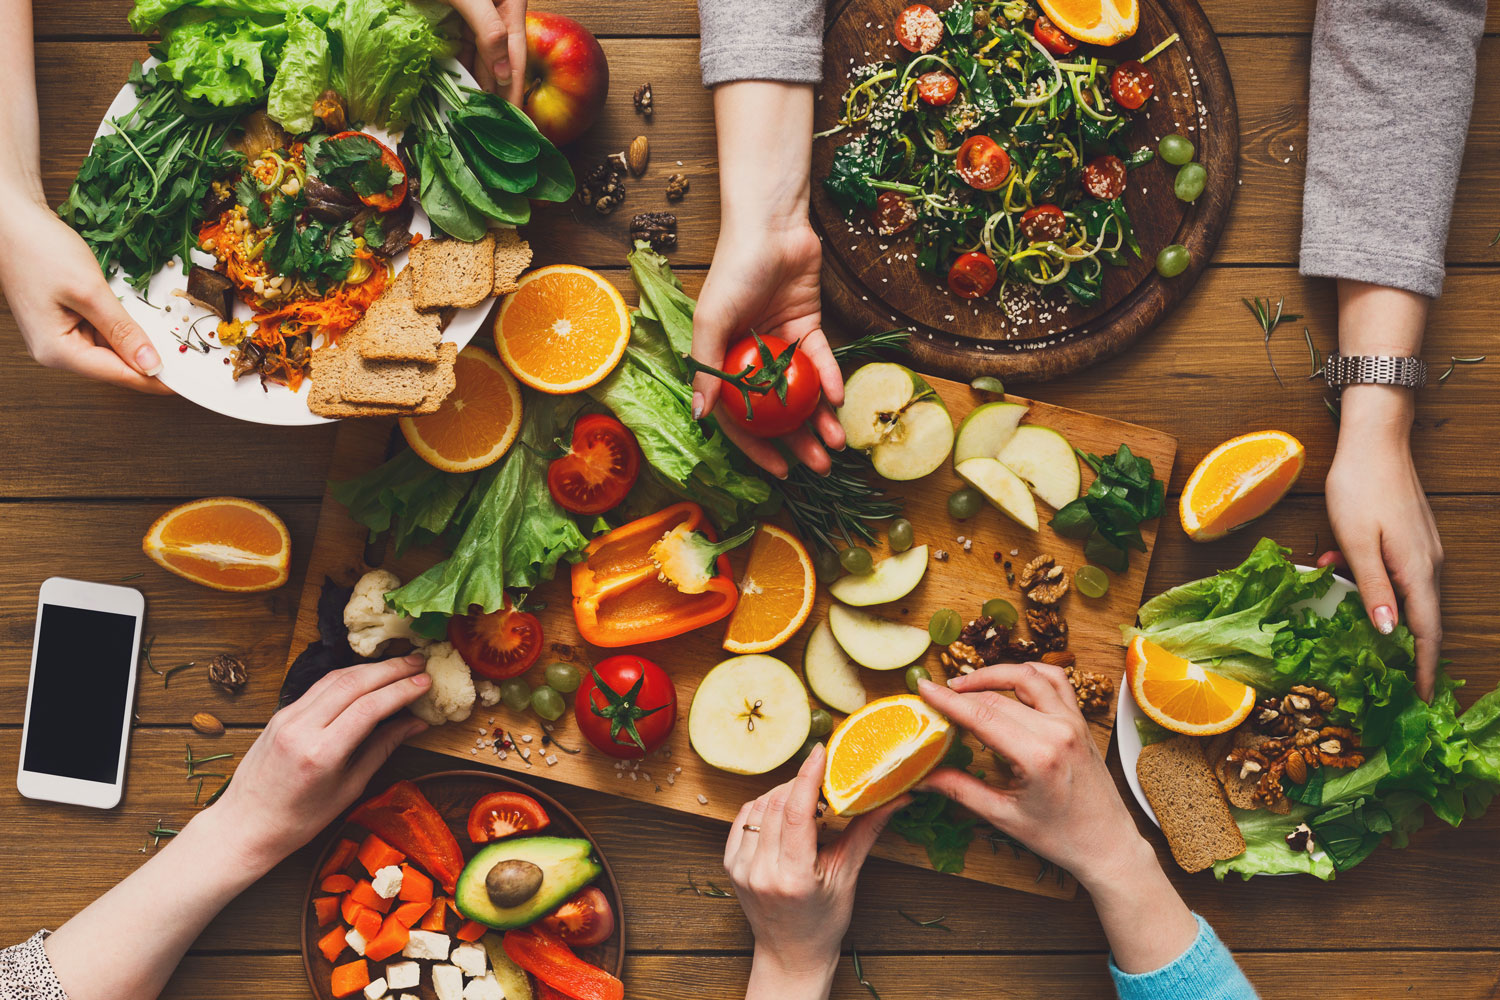 People Who Follow This Diet Are Healthier Than The Rest Of Us, Confirms Study